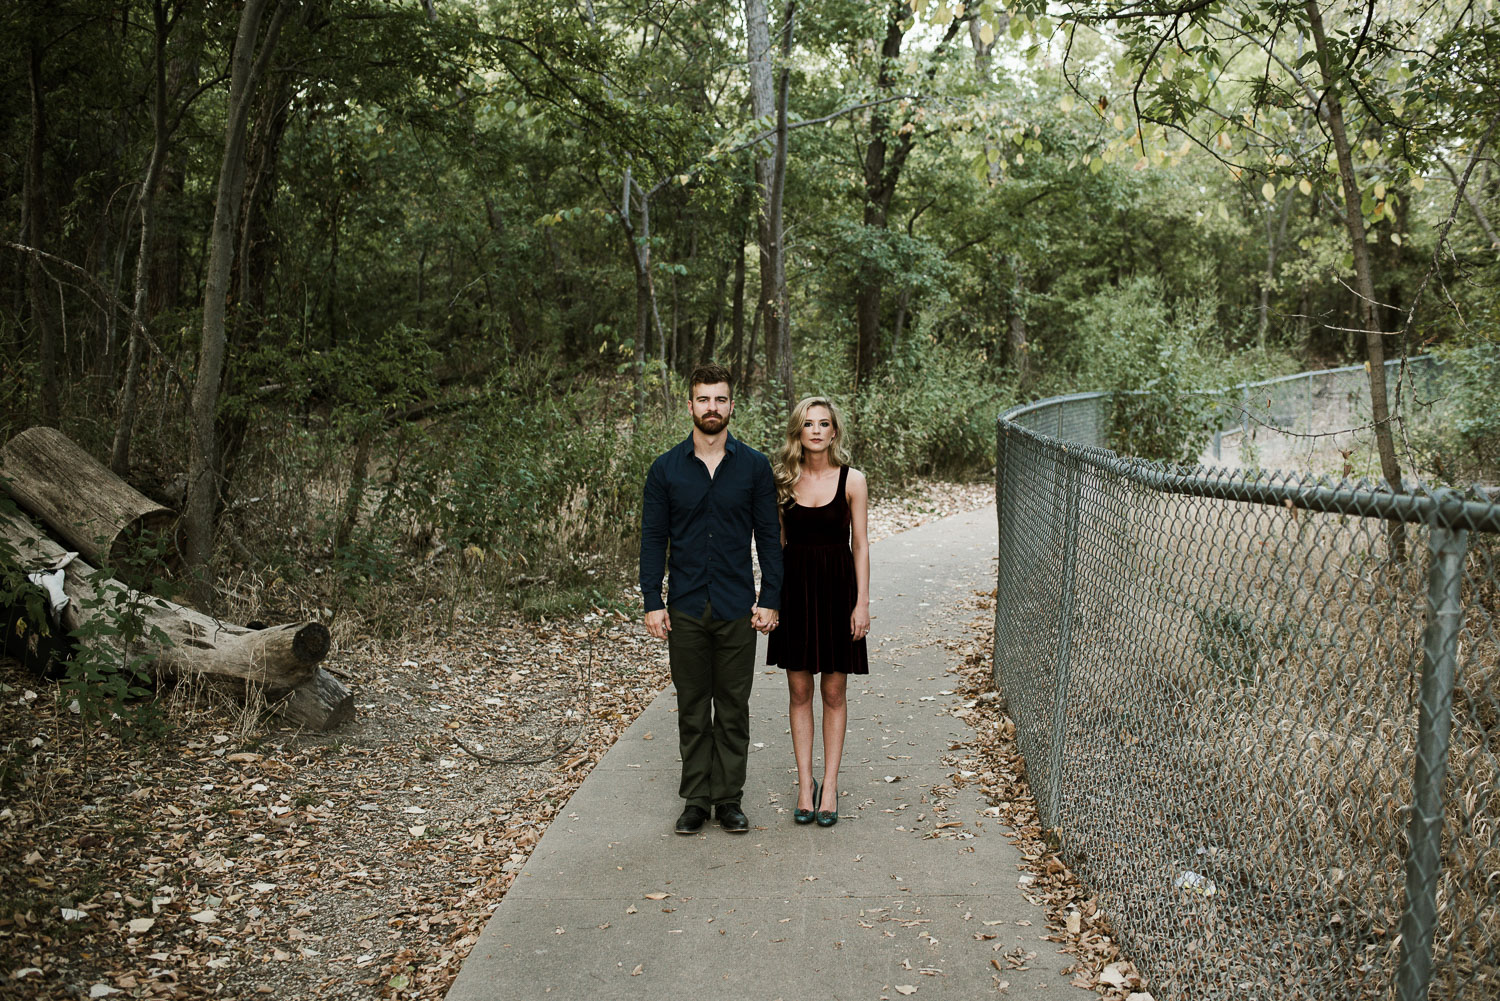 josh - lindsey - engagement - photos - alrington - texas - river - legacy - park-13.jpg